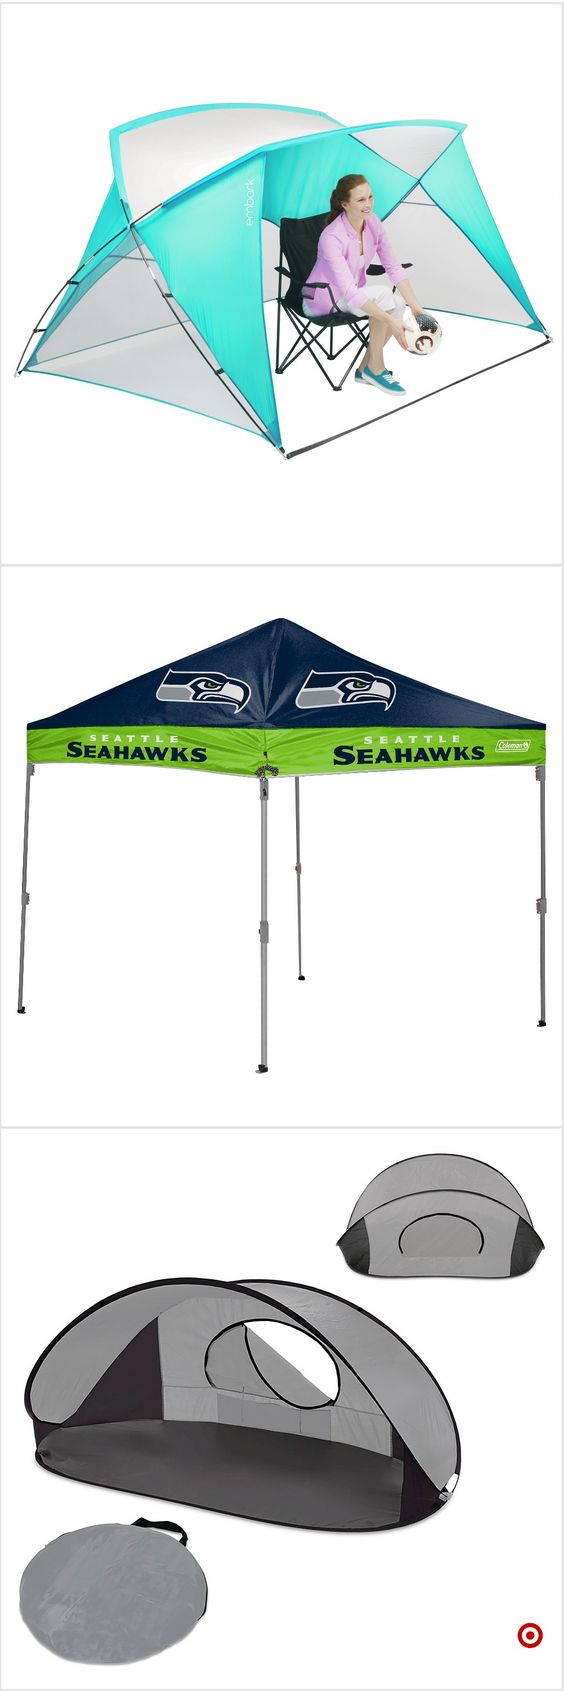 Shop Target For Beach Shelter Tent You Will Love At Great Low Prices Free Shipping On Orders Of 35 Or Free Same Day Pick Up In Store Canoe Camping